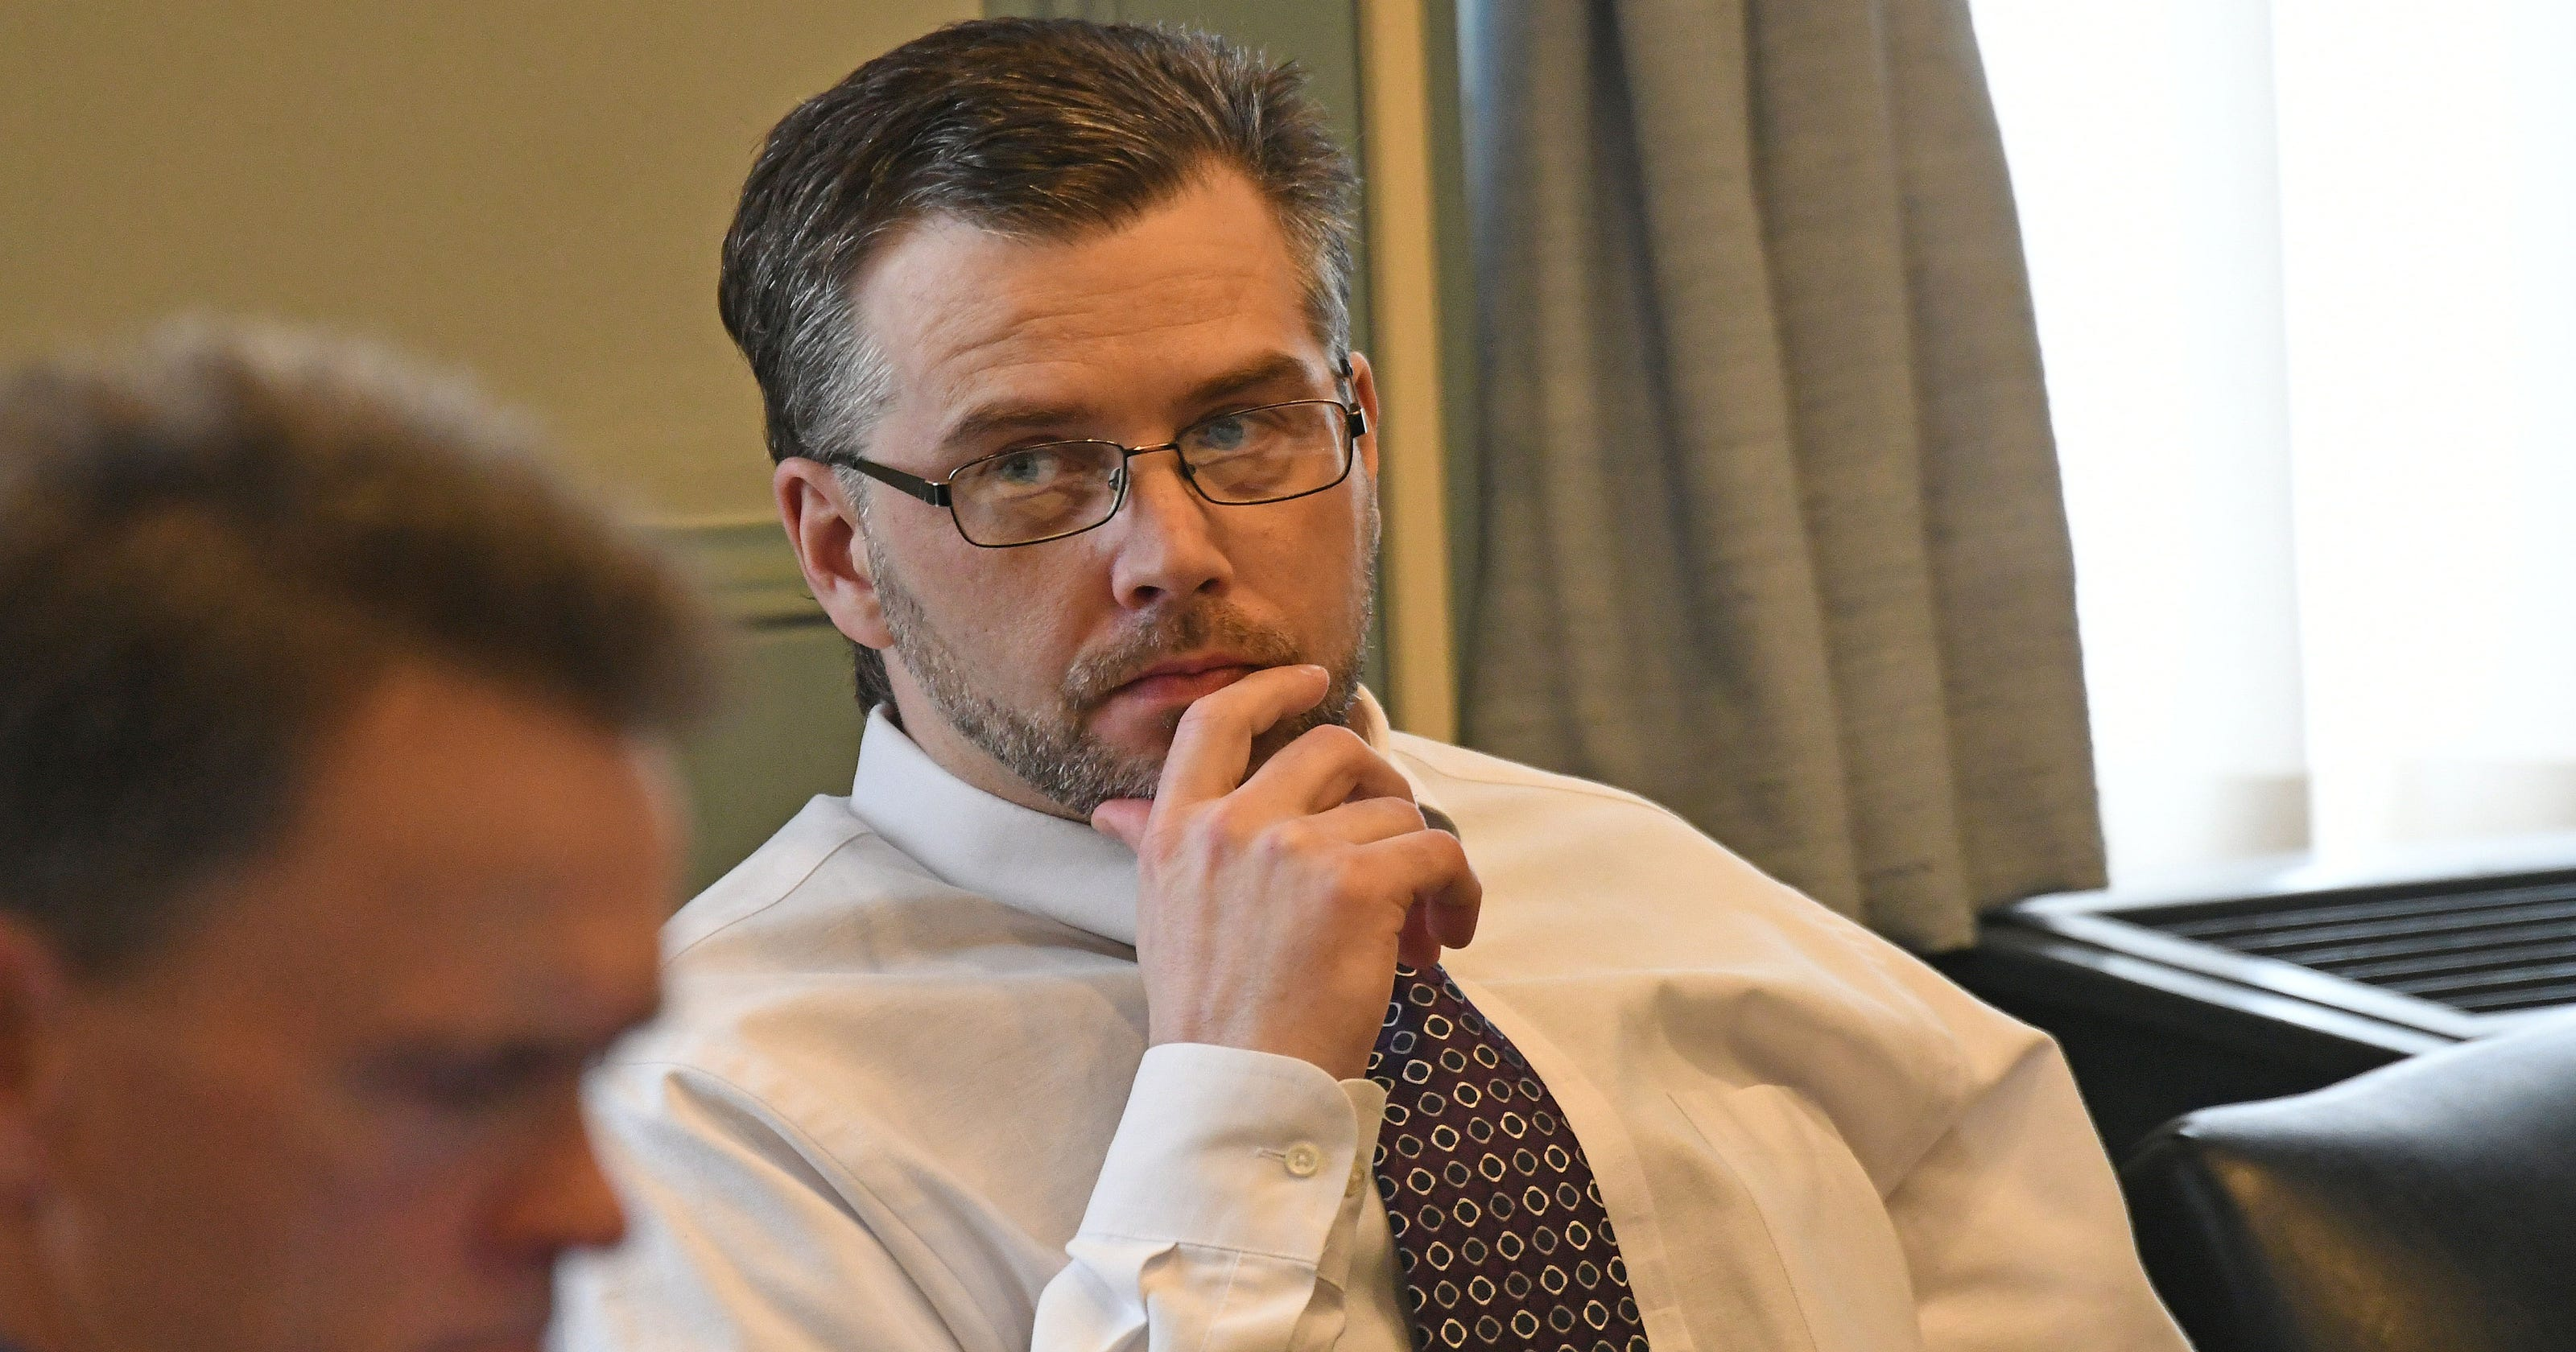 Potential jurors in Grate case questioned about death penalty